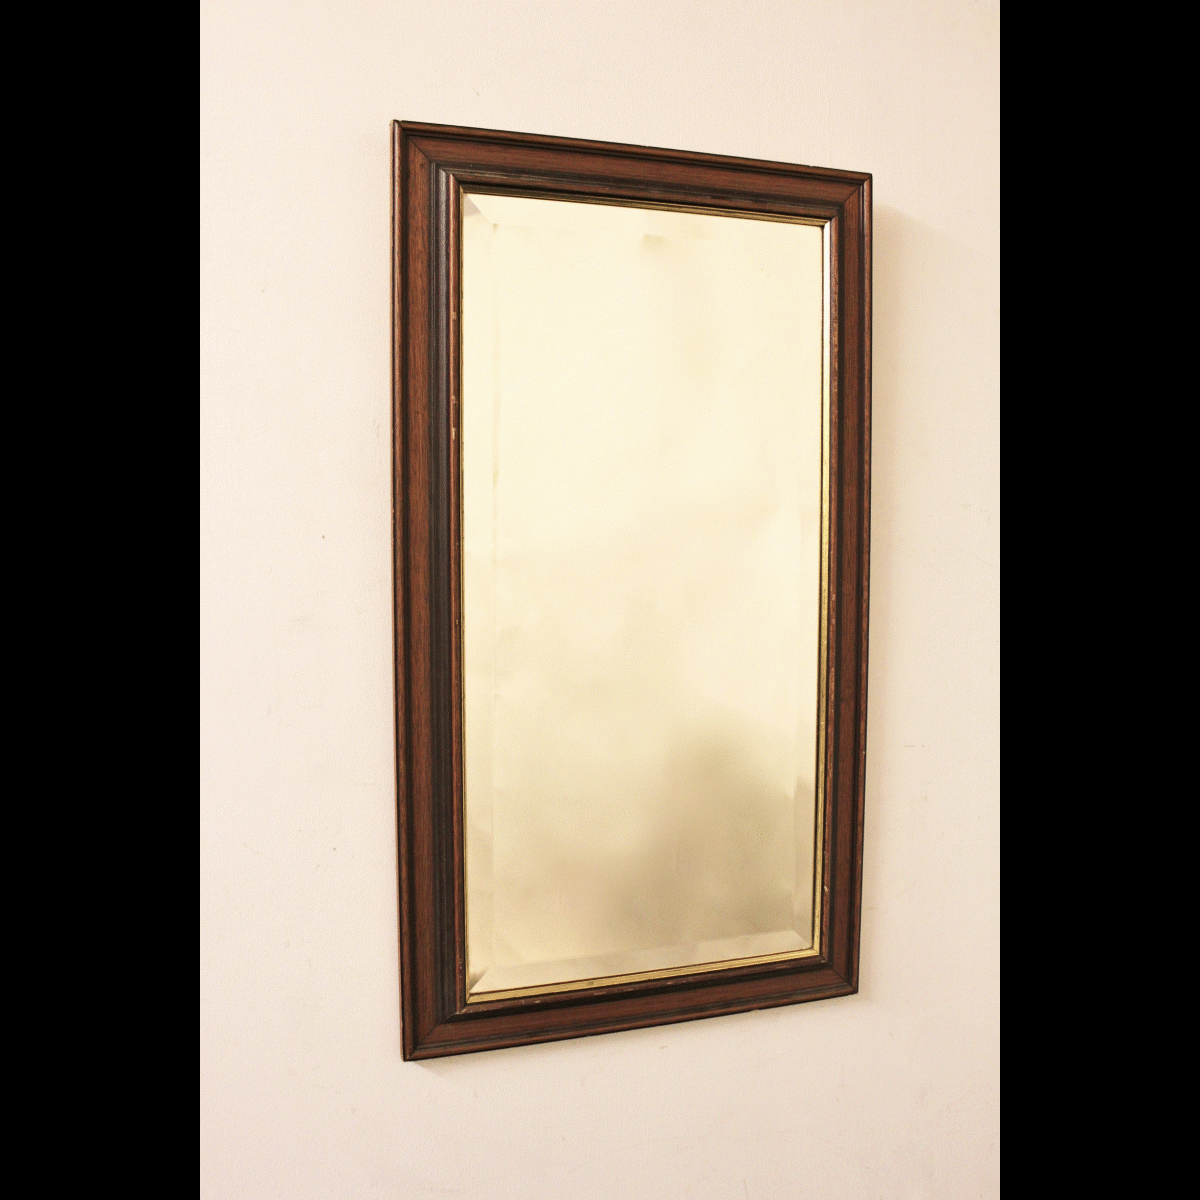 0070027 mirror x1 40cm wide by 70cm long stockyard north